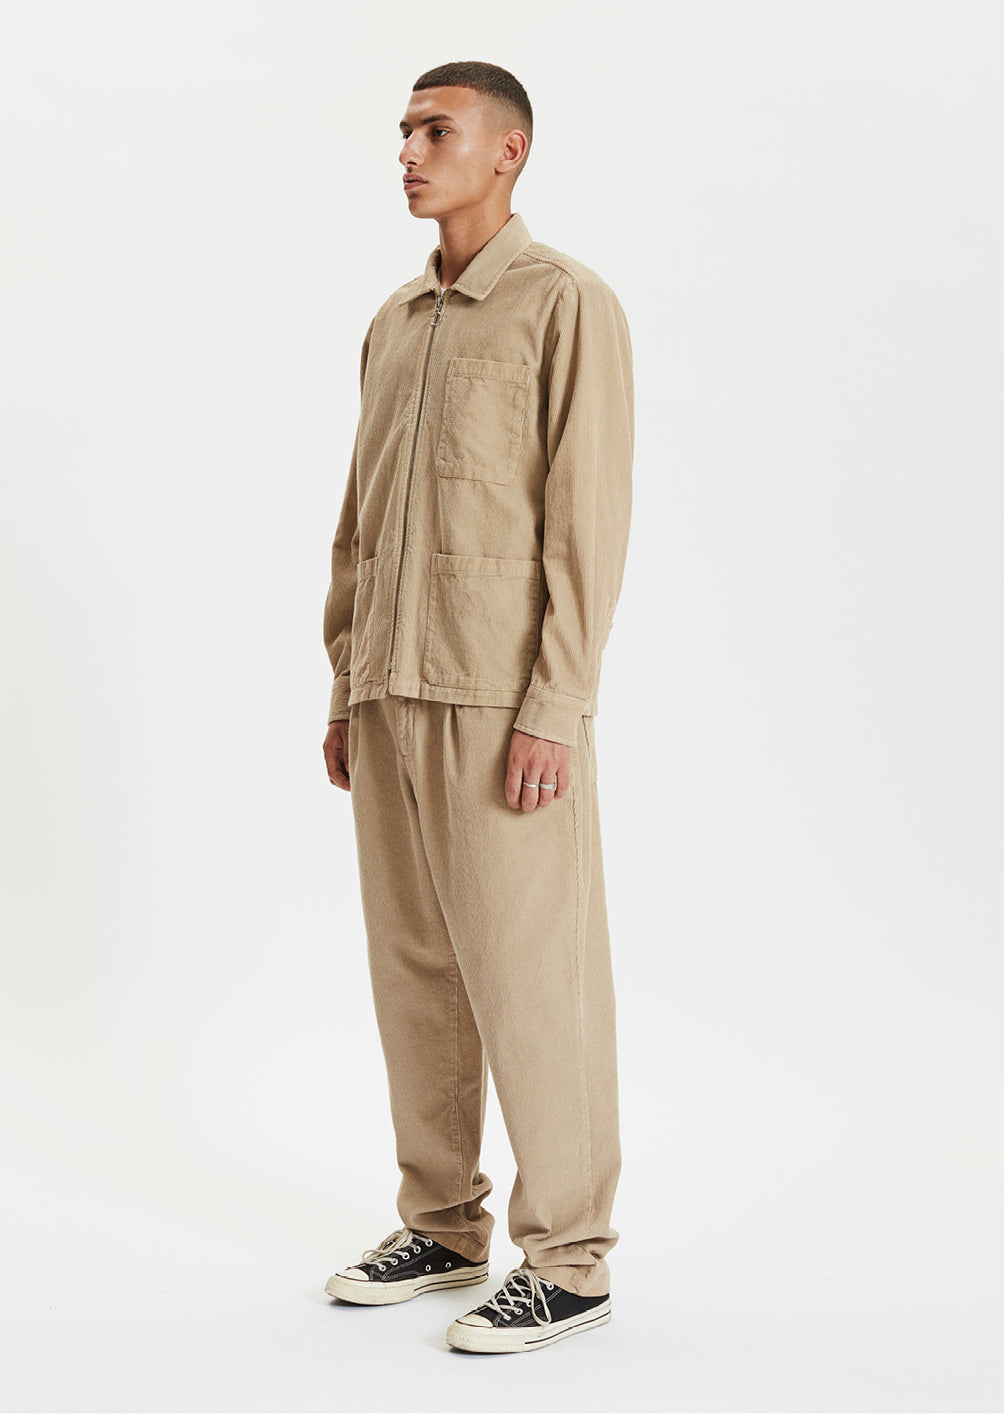 ZIP SHIRT - BEIGE